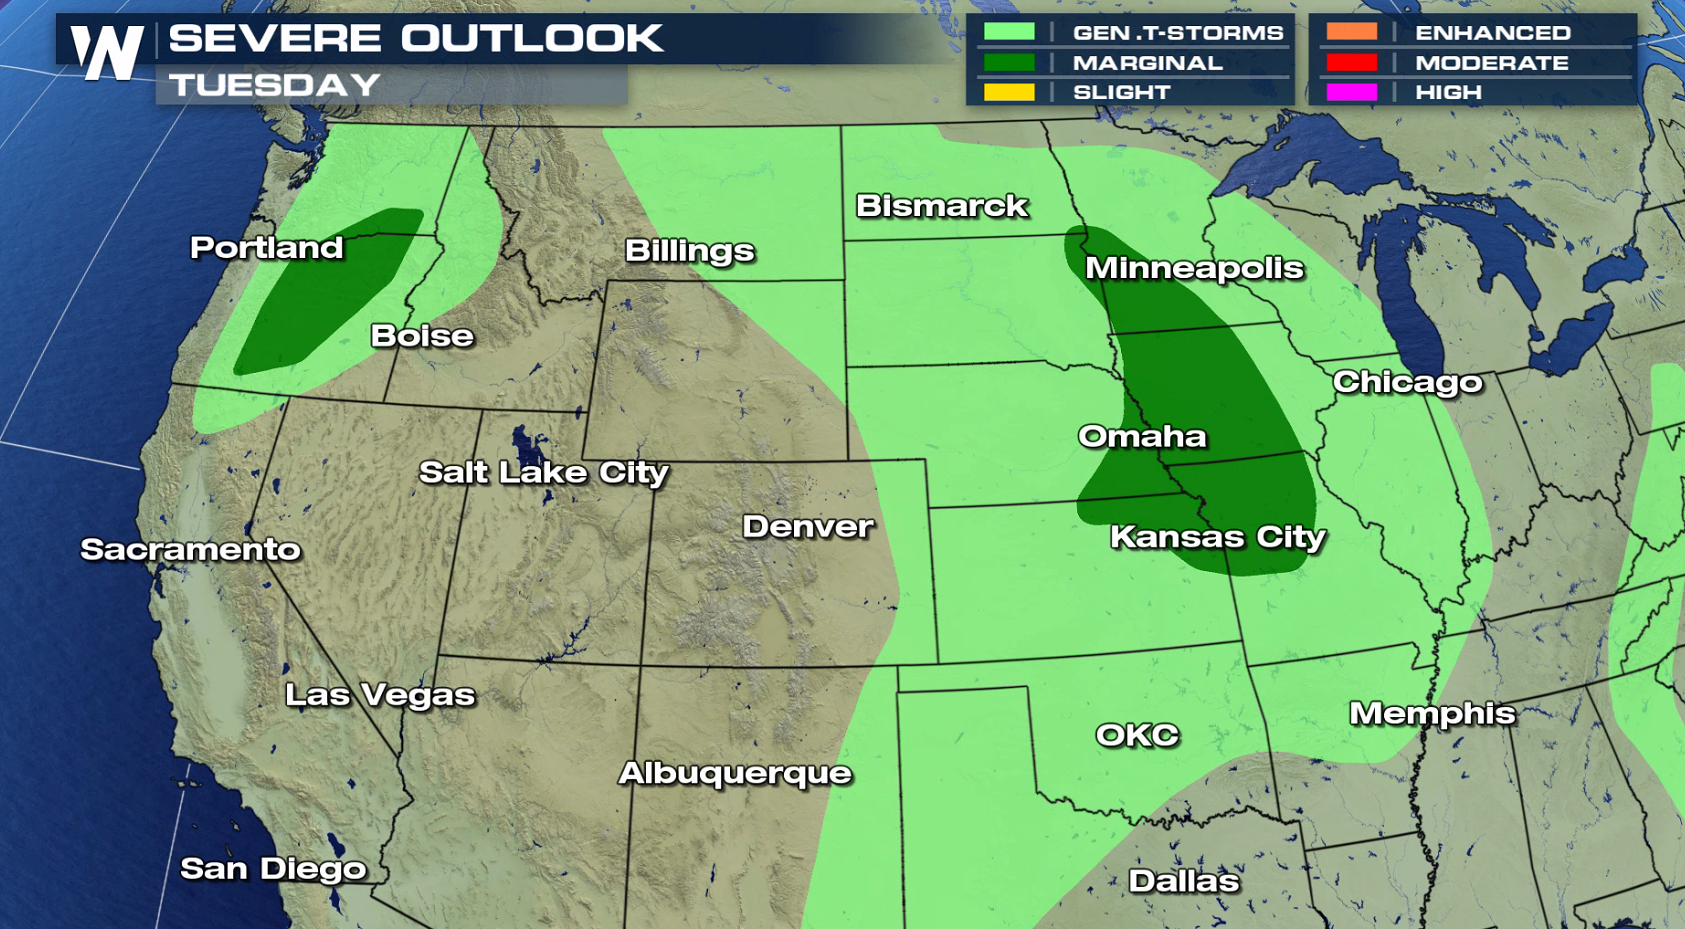 Marginal Severe Weather Risk Today in the Plains and